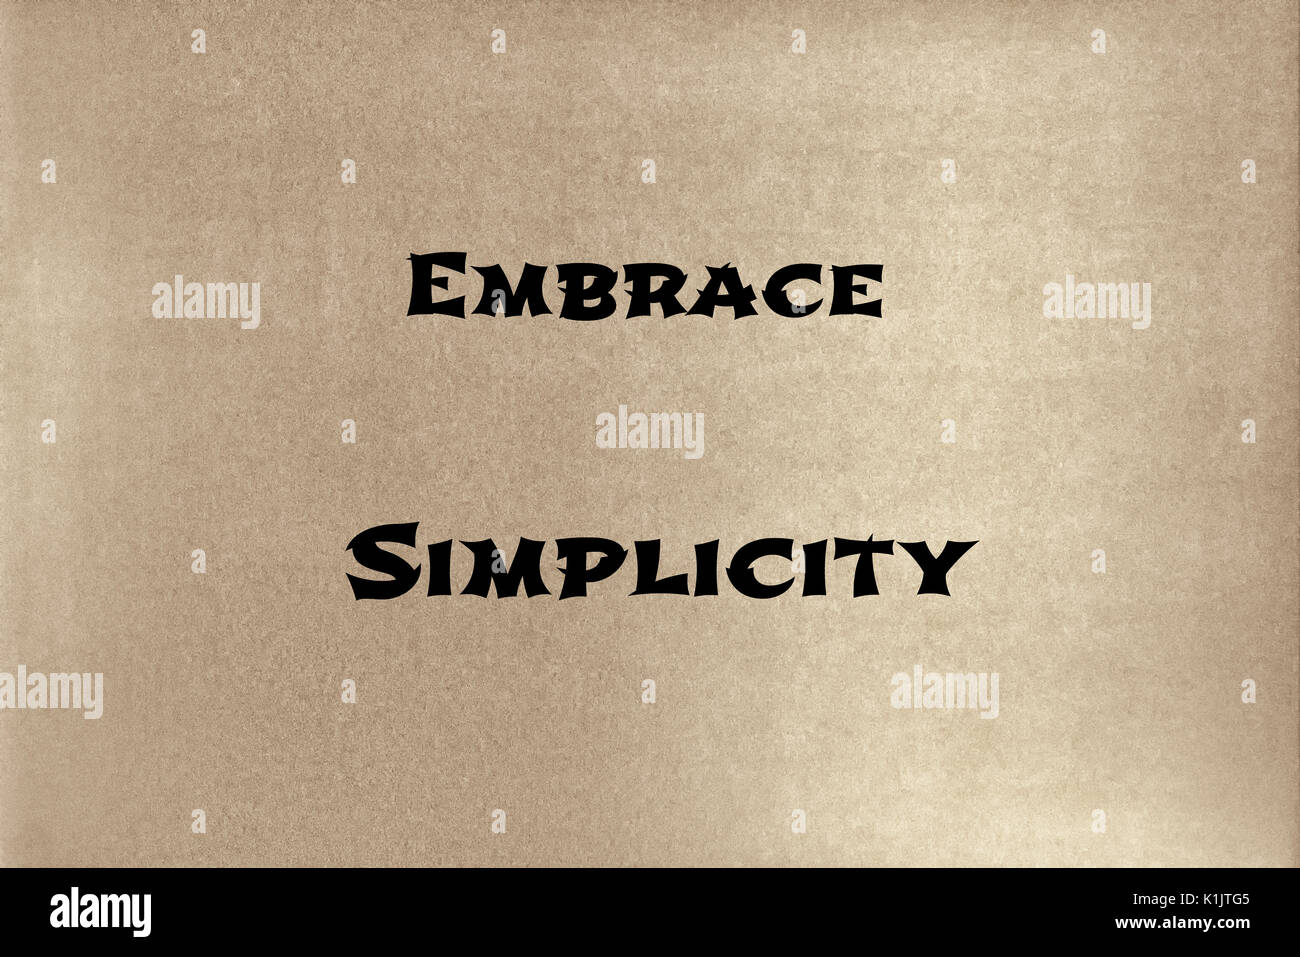 A phrase by Lao Tzu: Embrace simplicity.   Graphic Design. - Stock Image